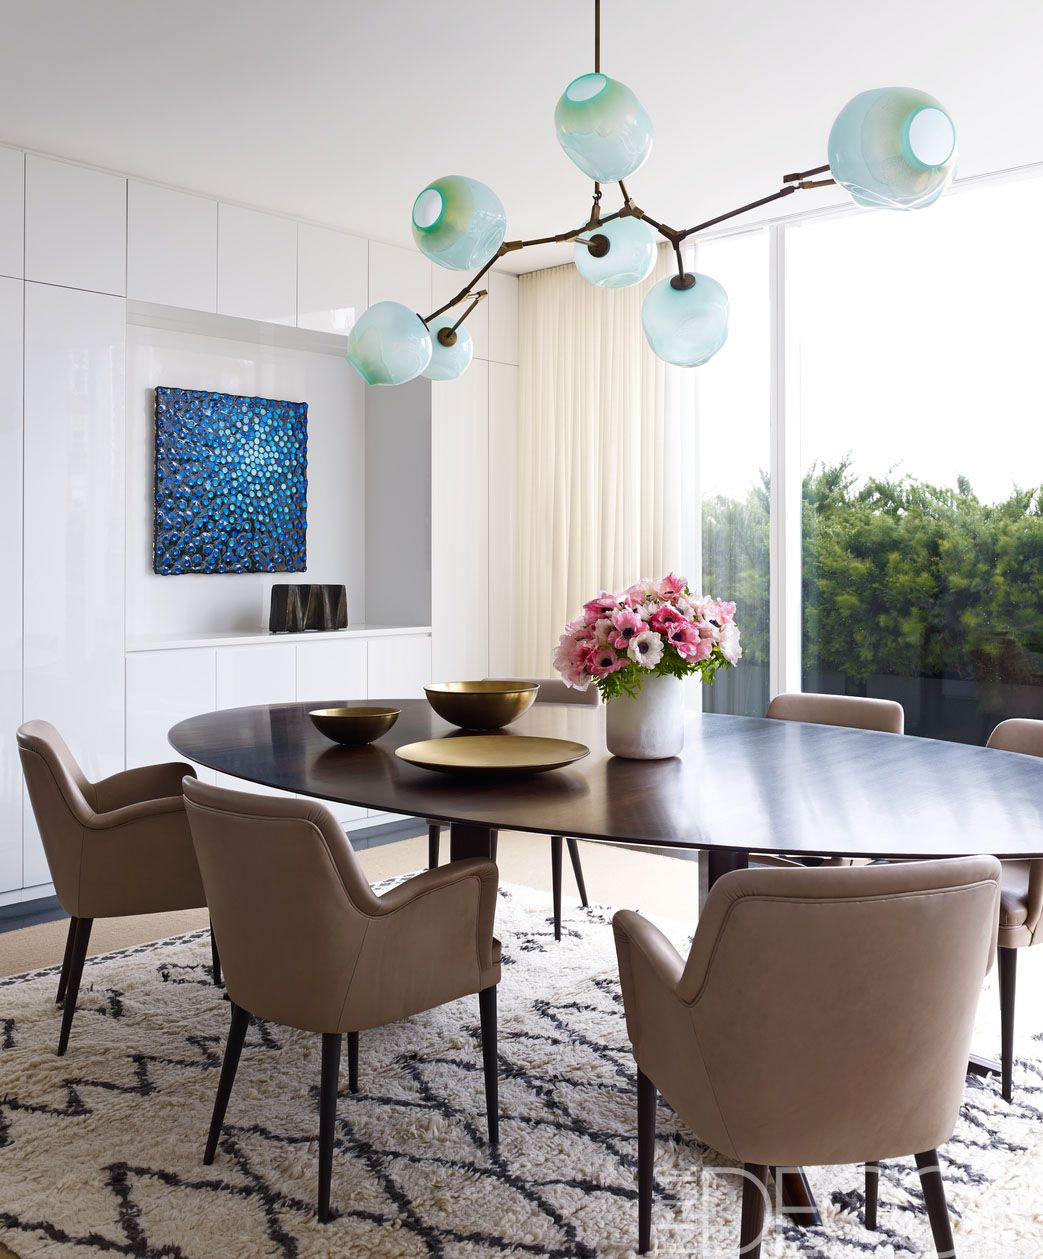 Contemporary Dining Room Decor Ideas 25 modern dining room decorating ideas - contemporary dining room